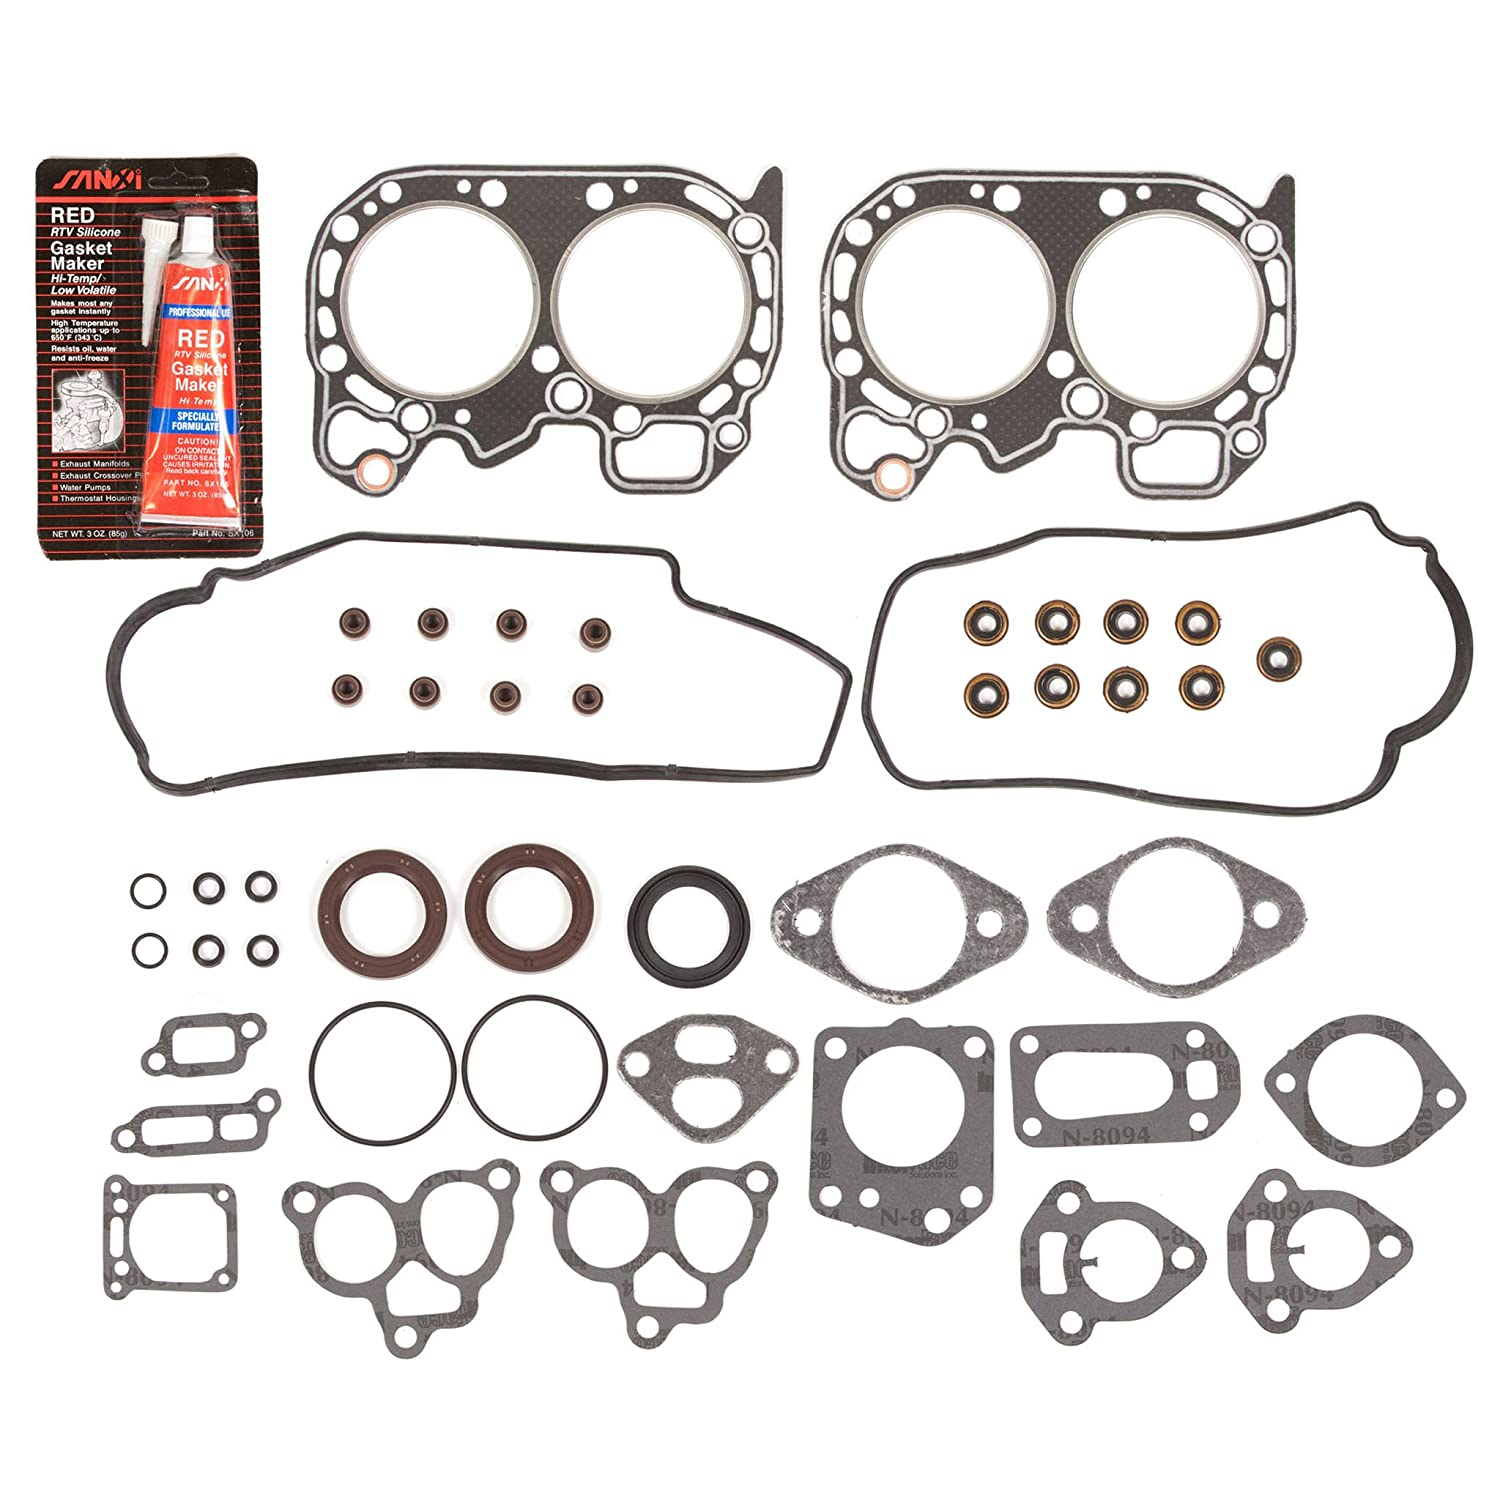 Evergreen HS9005 Cylinder Head Gasket Set